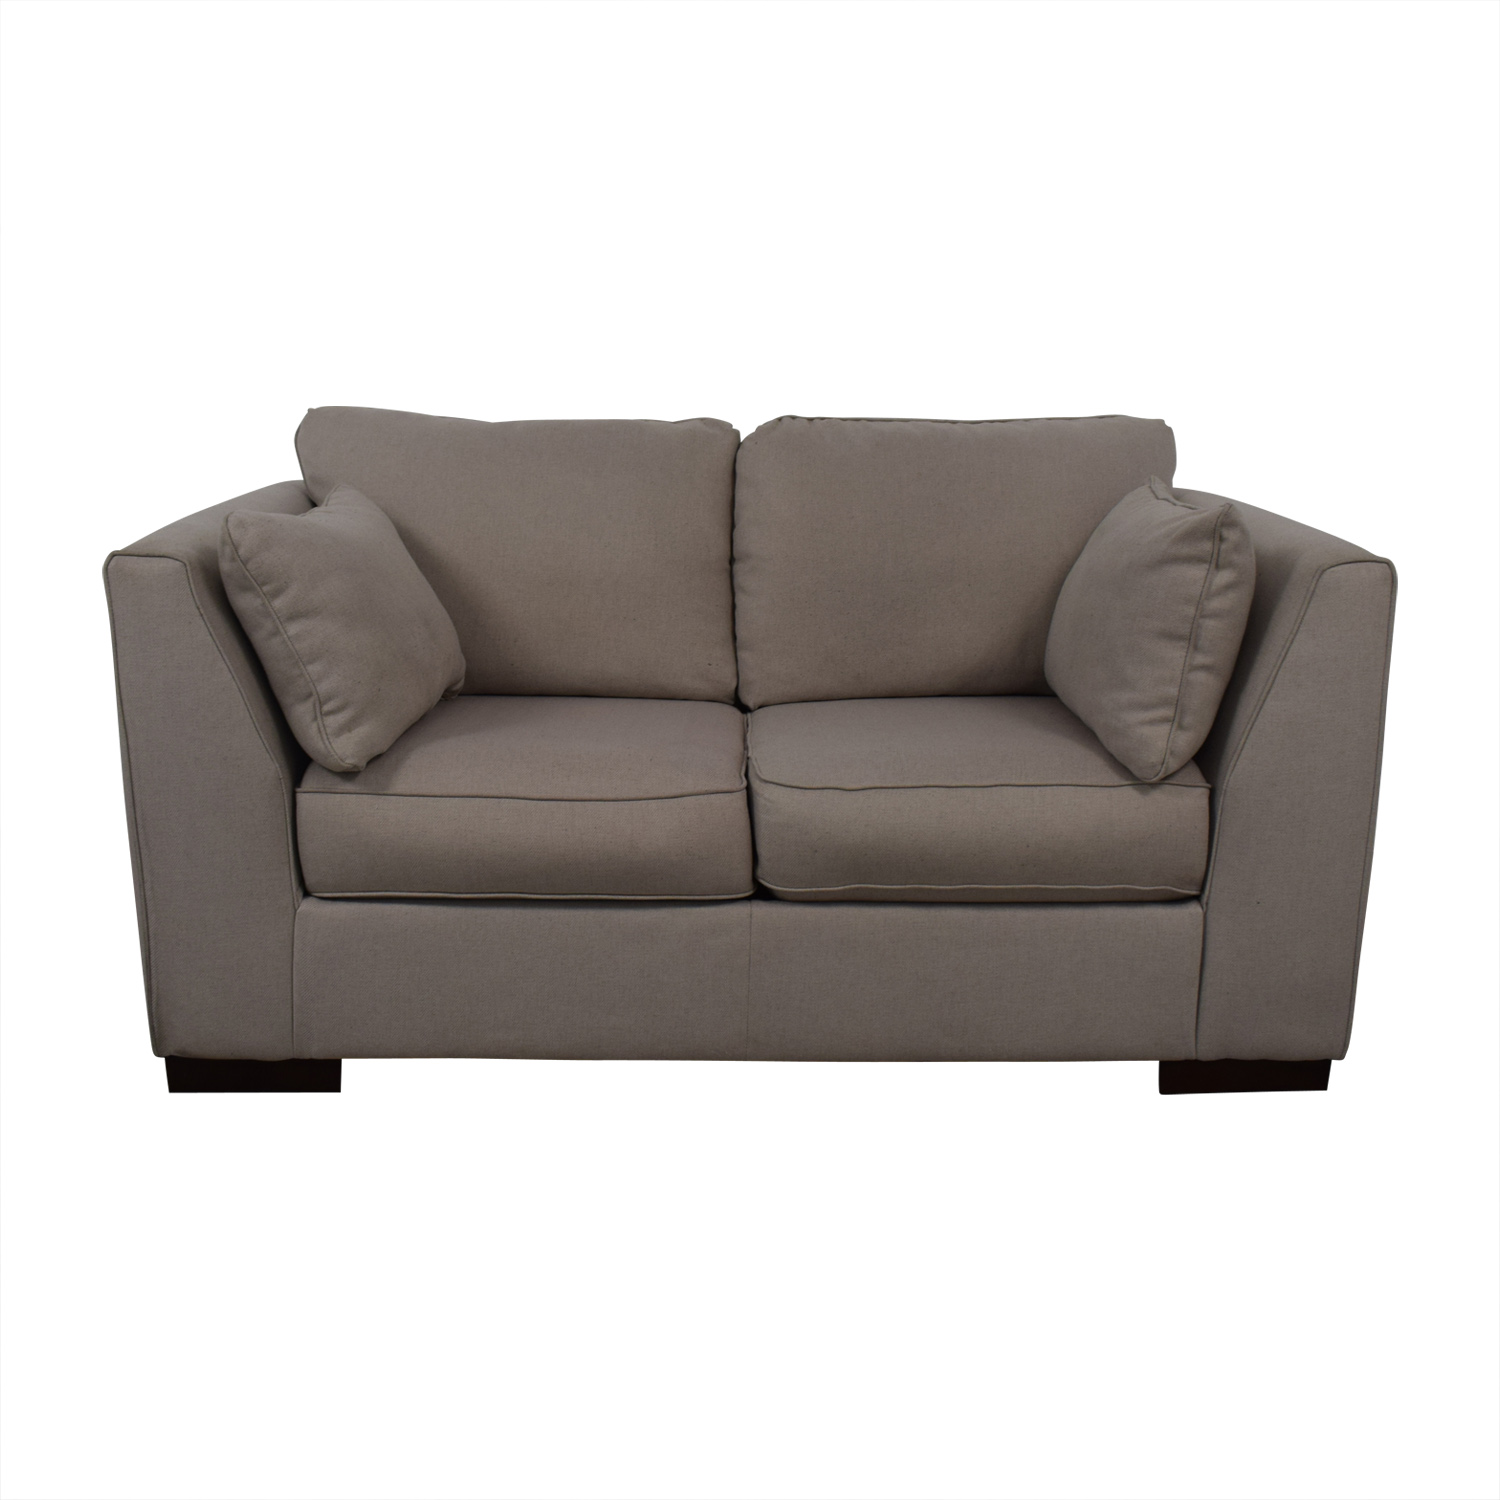 shop Ashley Furniture Ashley Furniture Pierin Loveseat online